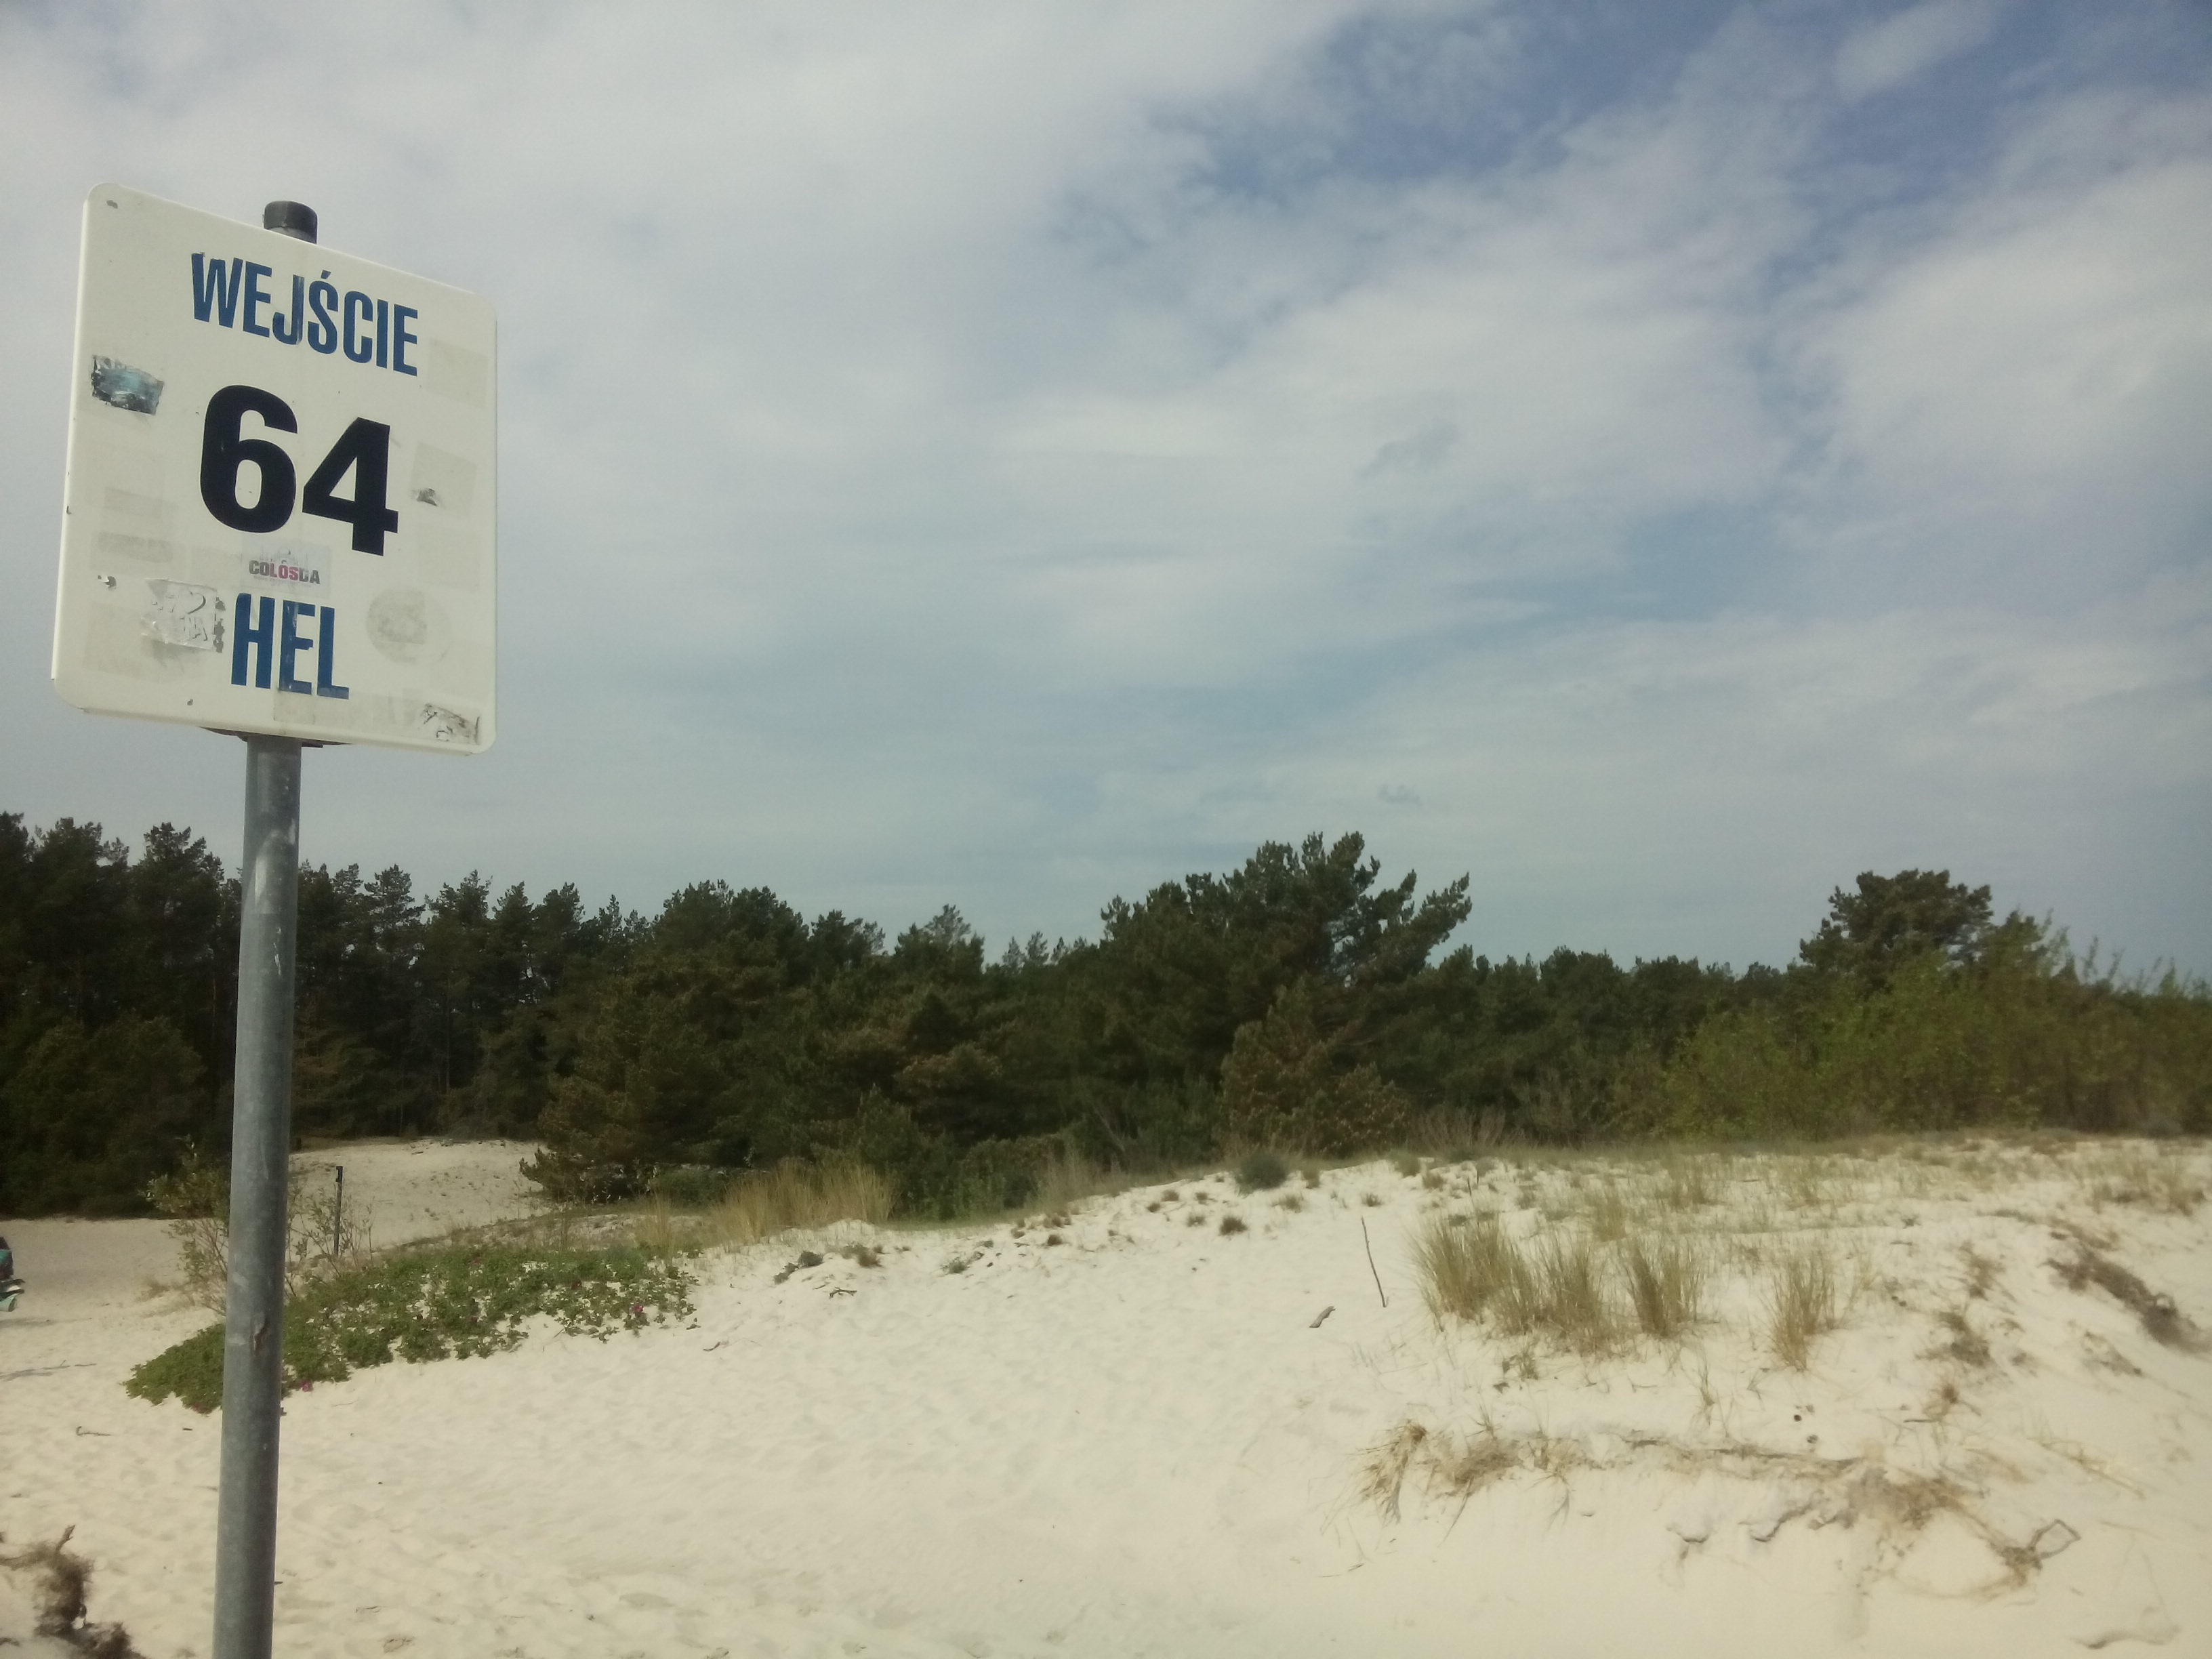 White sand dunes with scattered grass and trees, and a sign saying 64 Hel